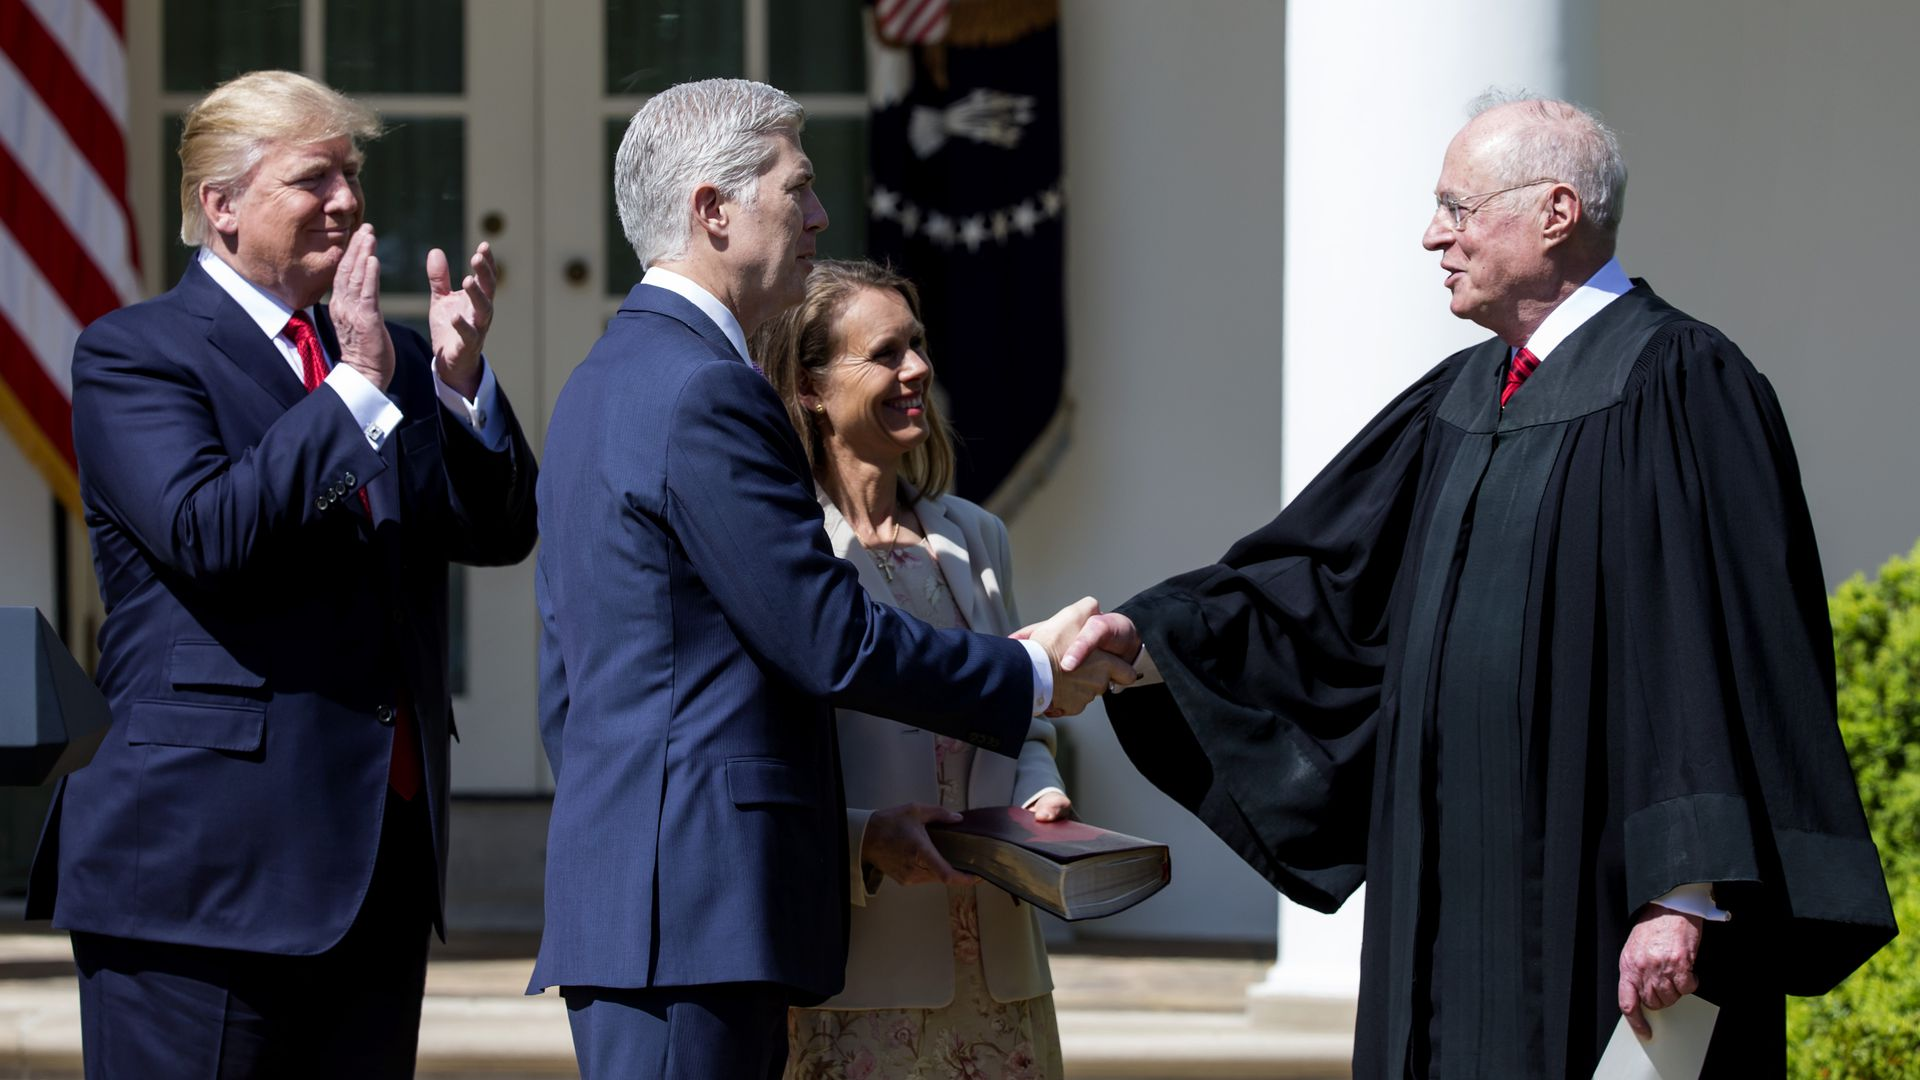 President Trump, Neil Gorsuch and Anthony Kennedy